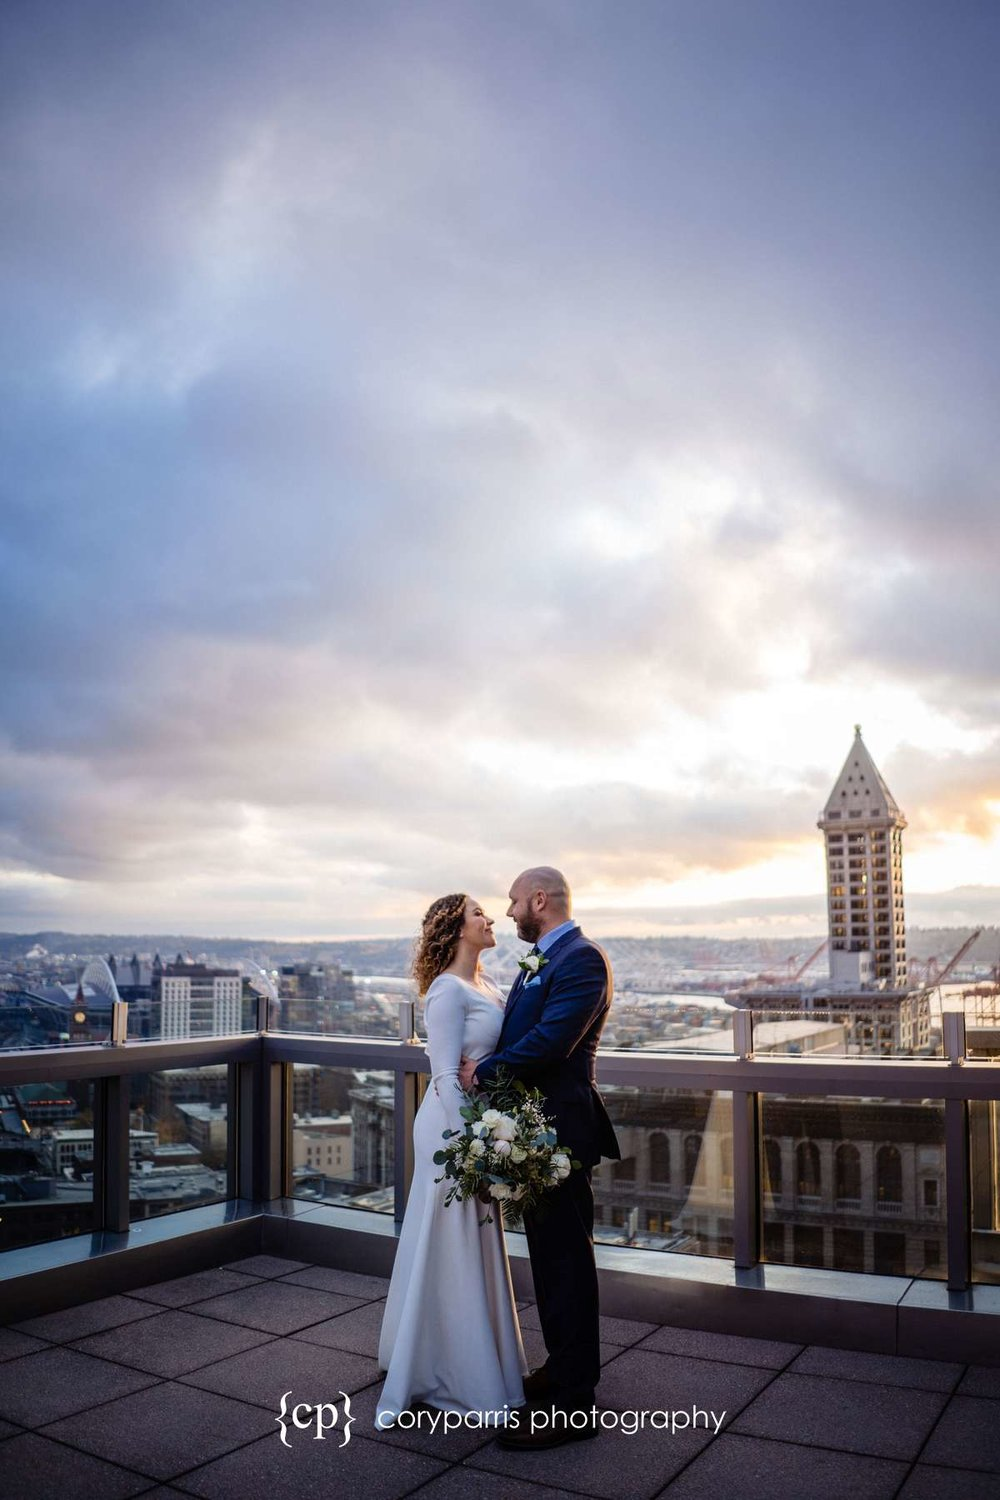 108-Seattle-Elope-Courthouse.jpg